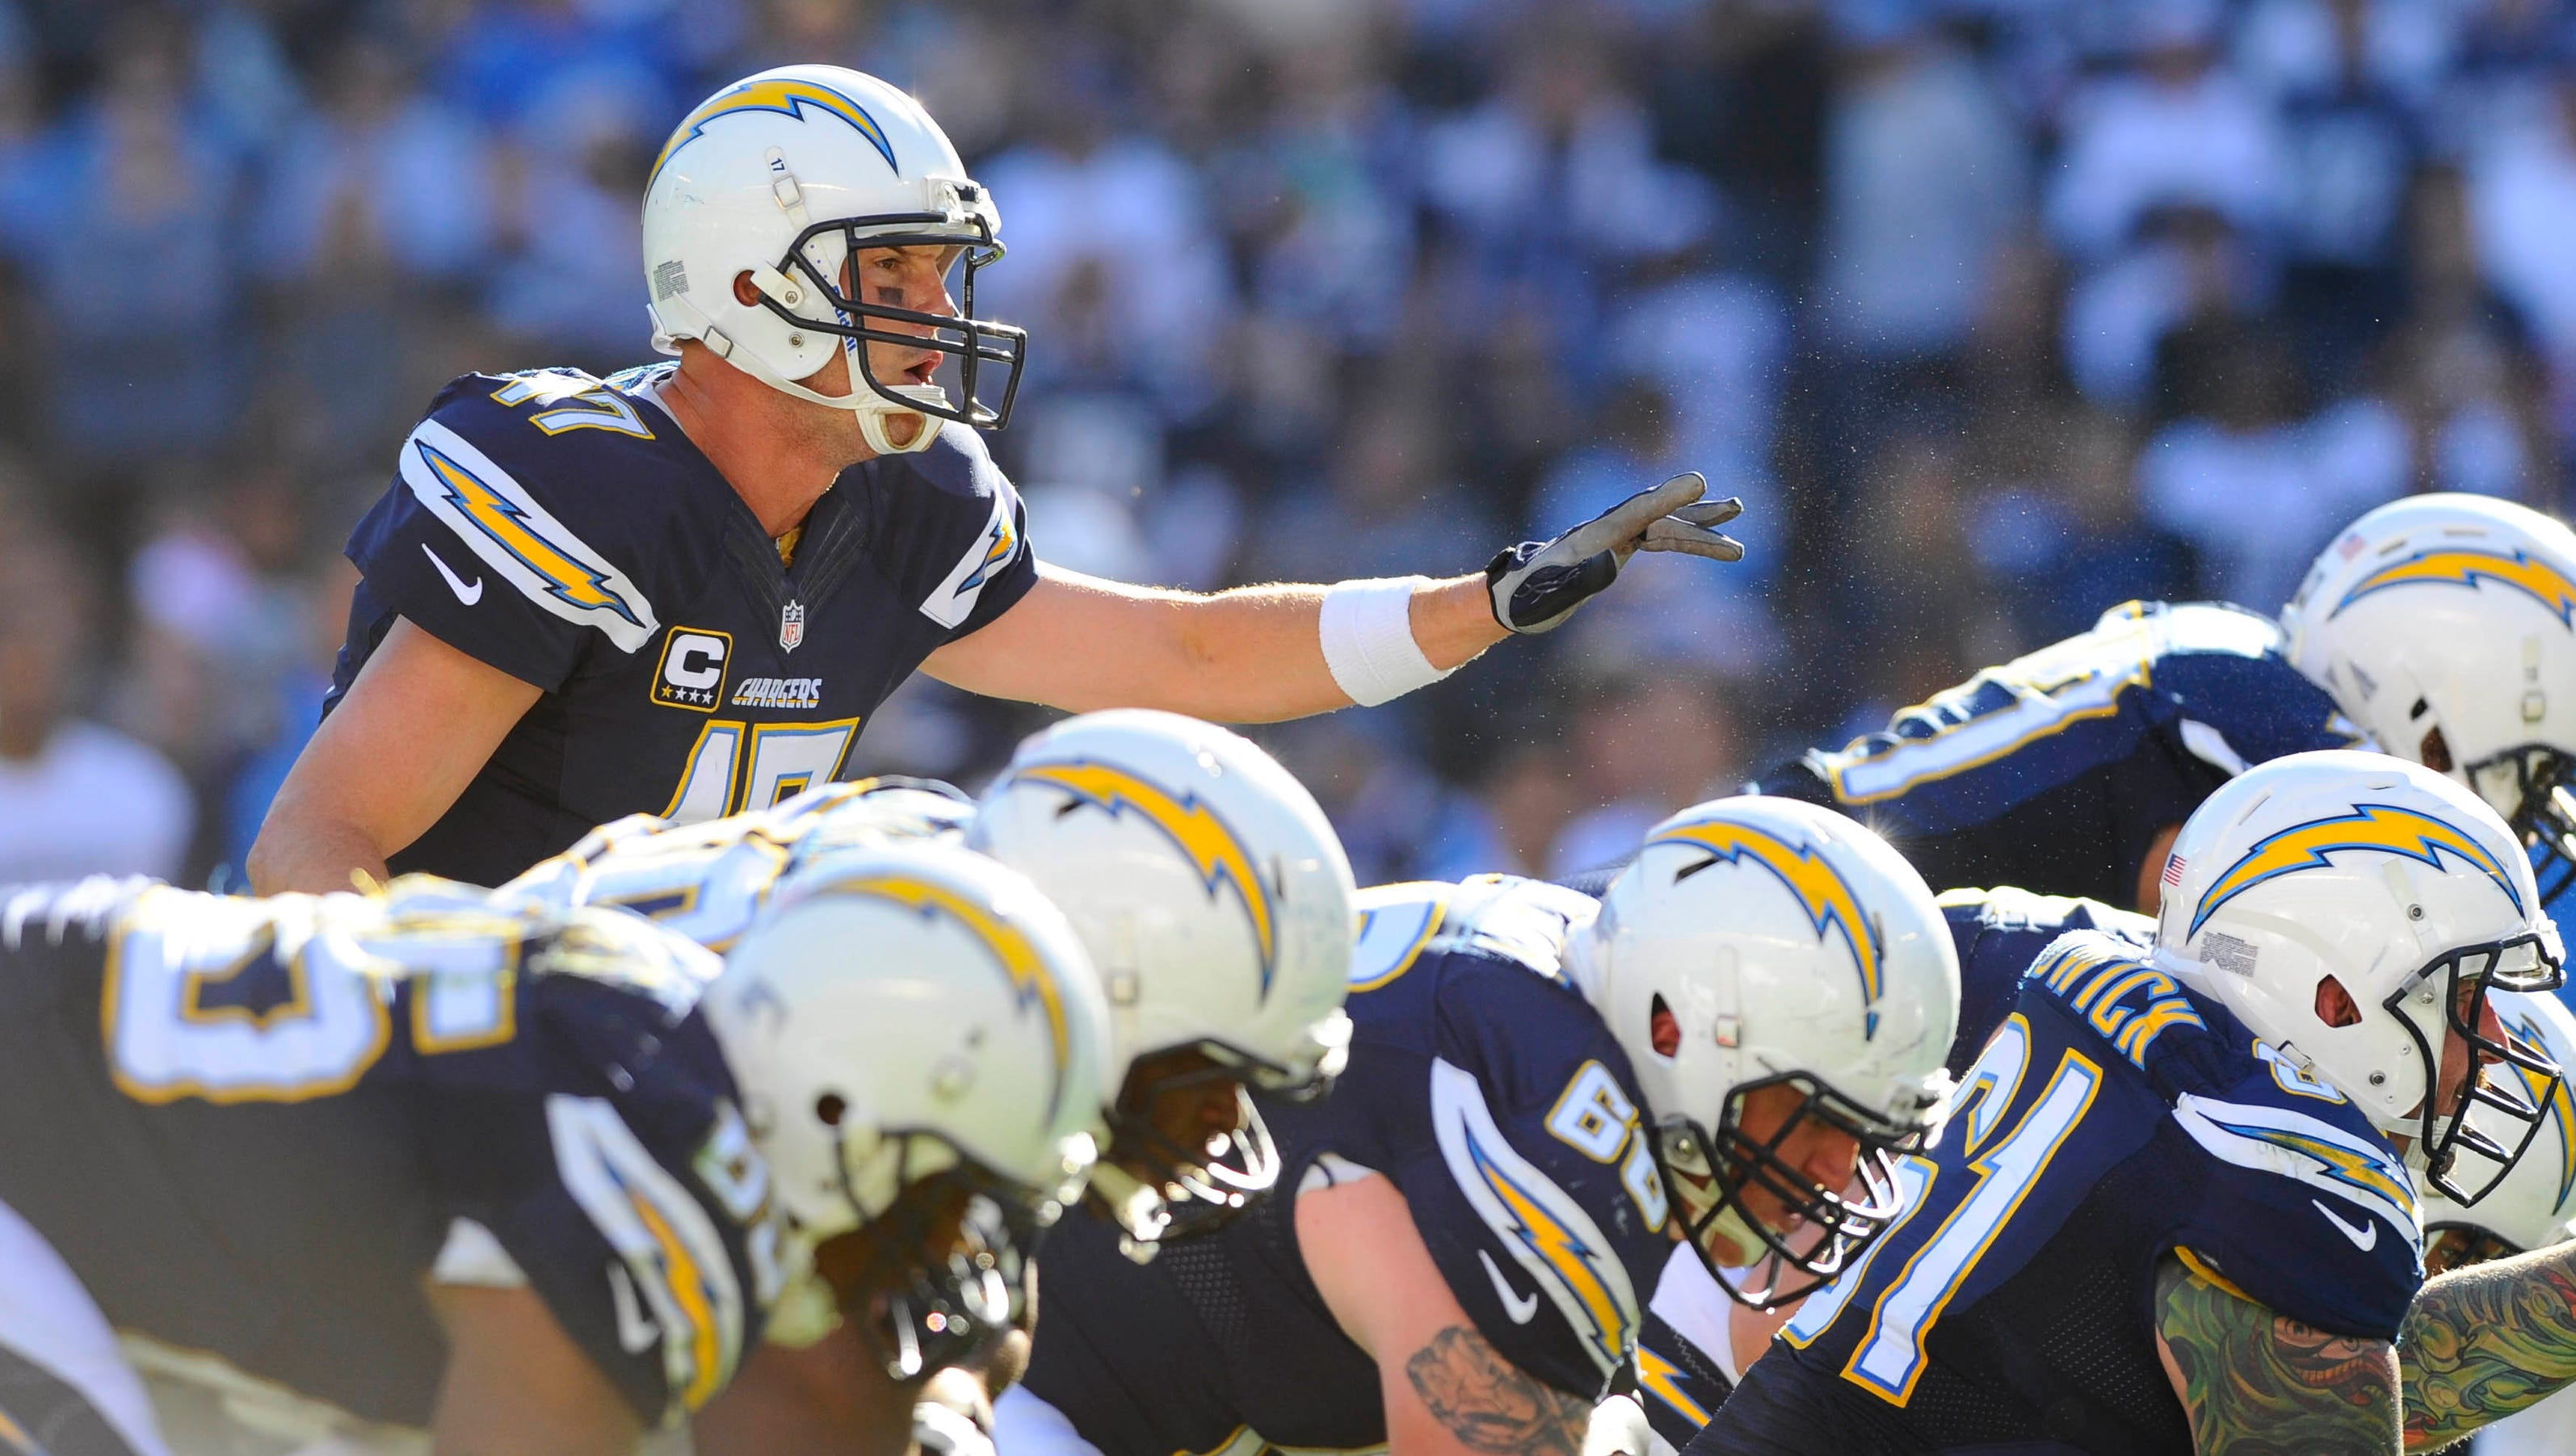 Chargers Report Bolts Look To Build On 2013 Momentum